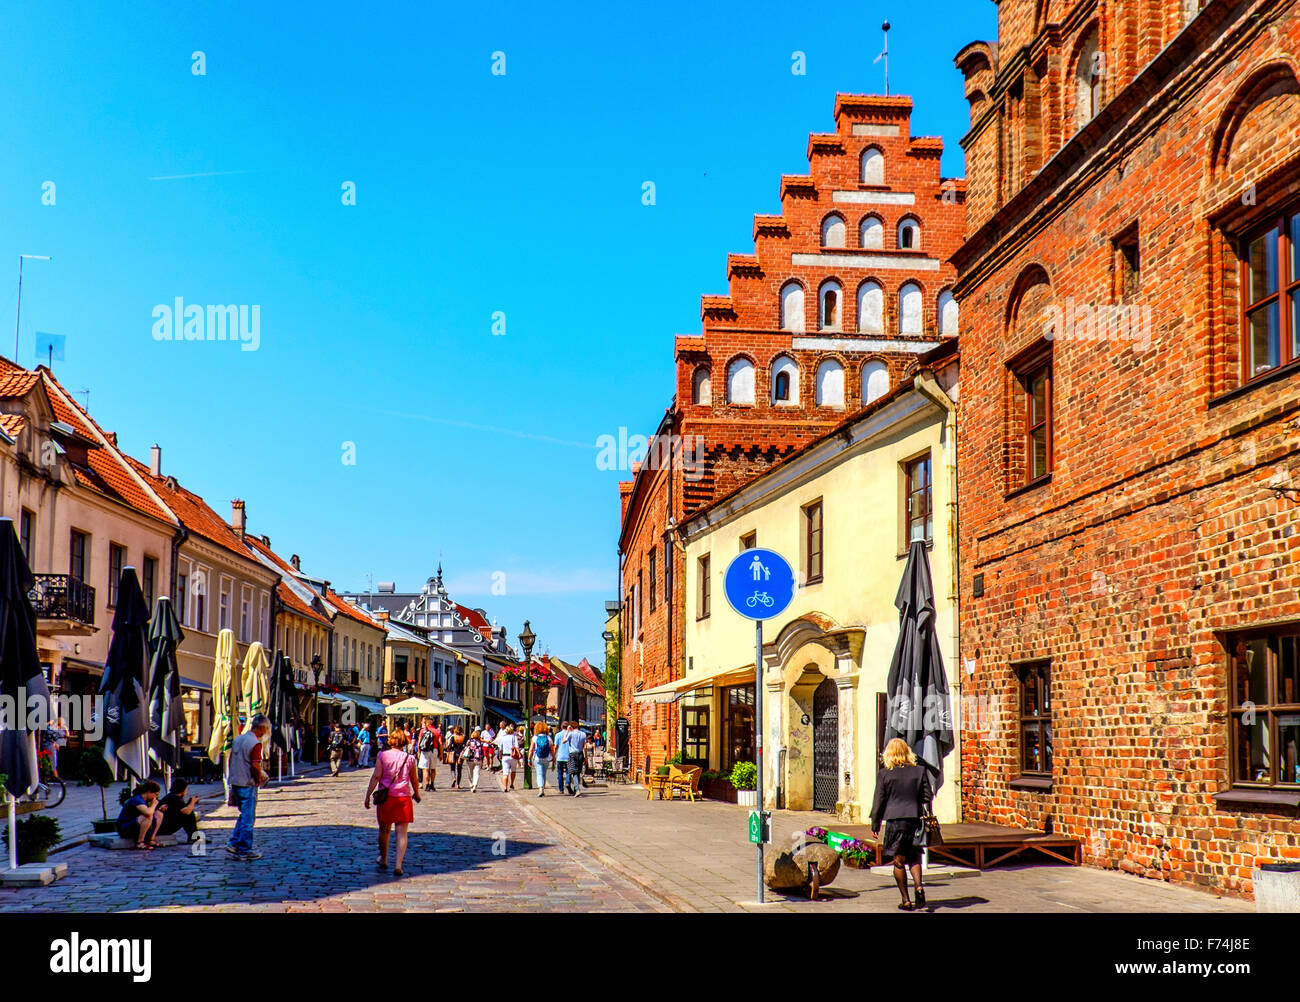 Cobbled Street in Old Town Kaunas, Lithuania - Stock Image